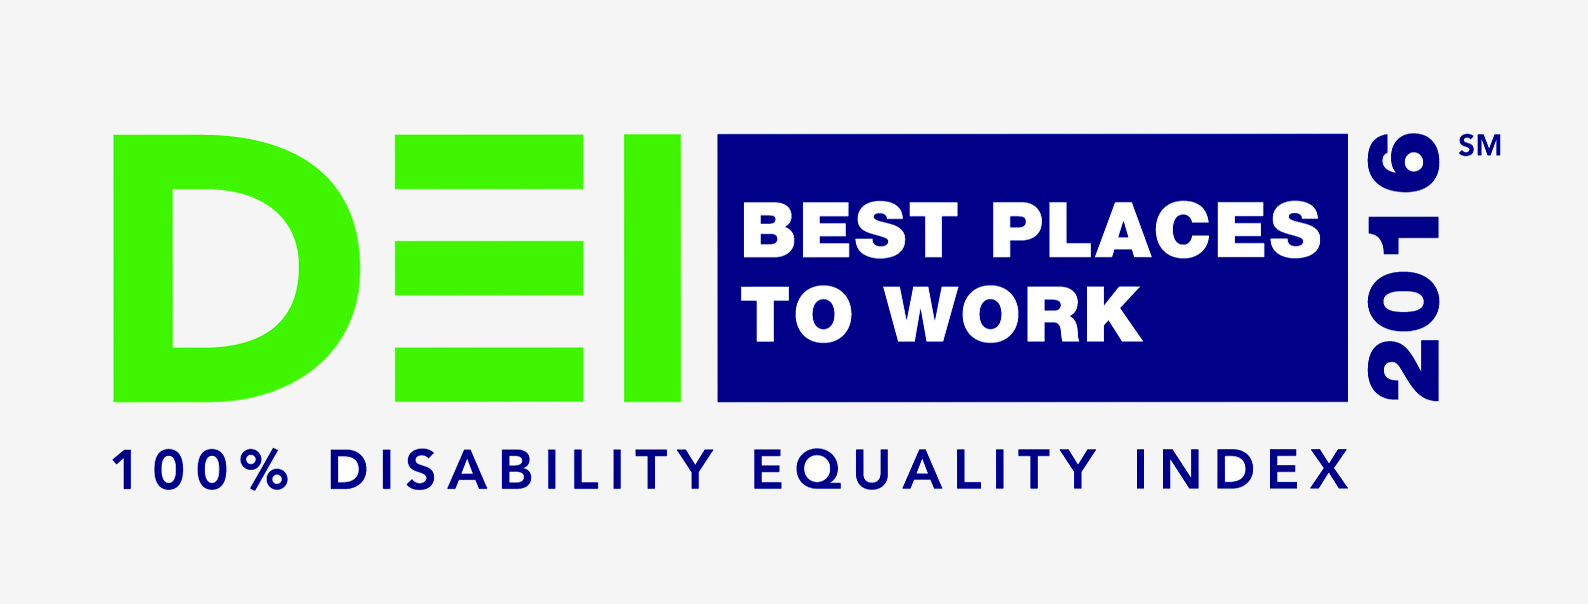 100 percent disability equality index. 2016 best places to work.